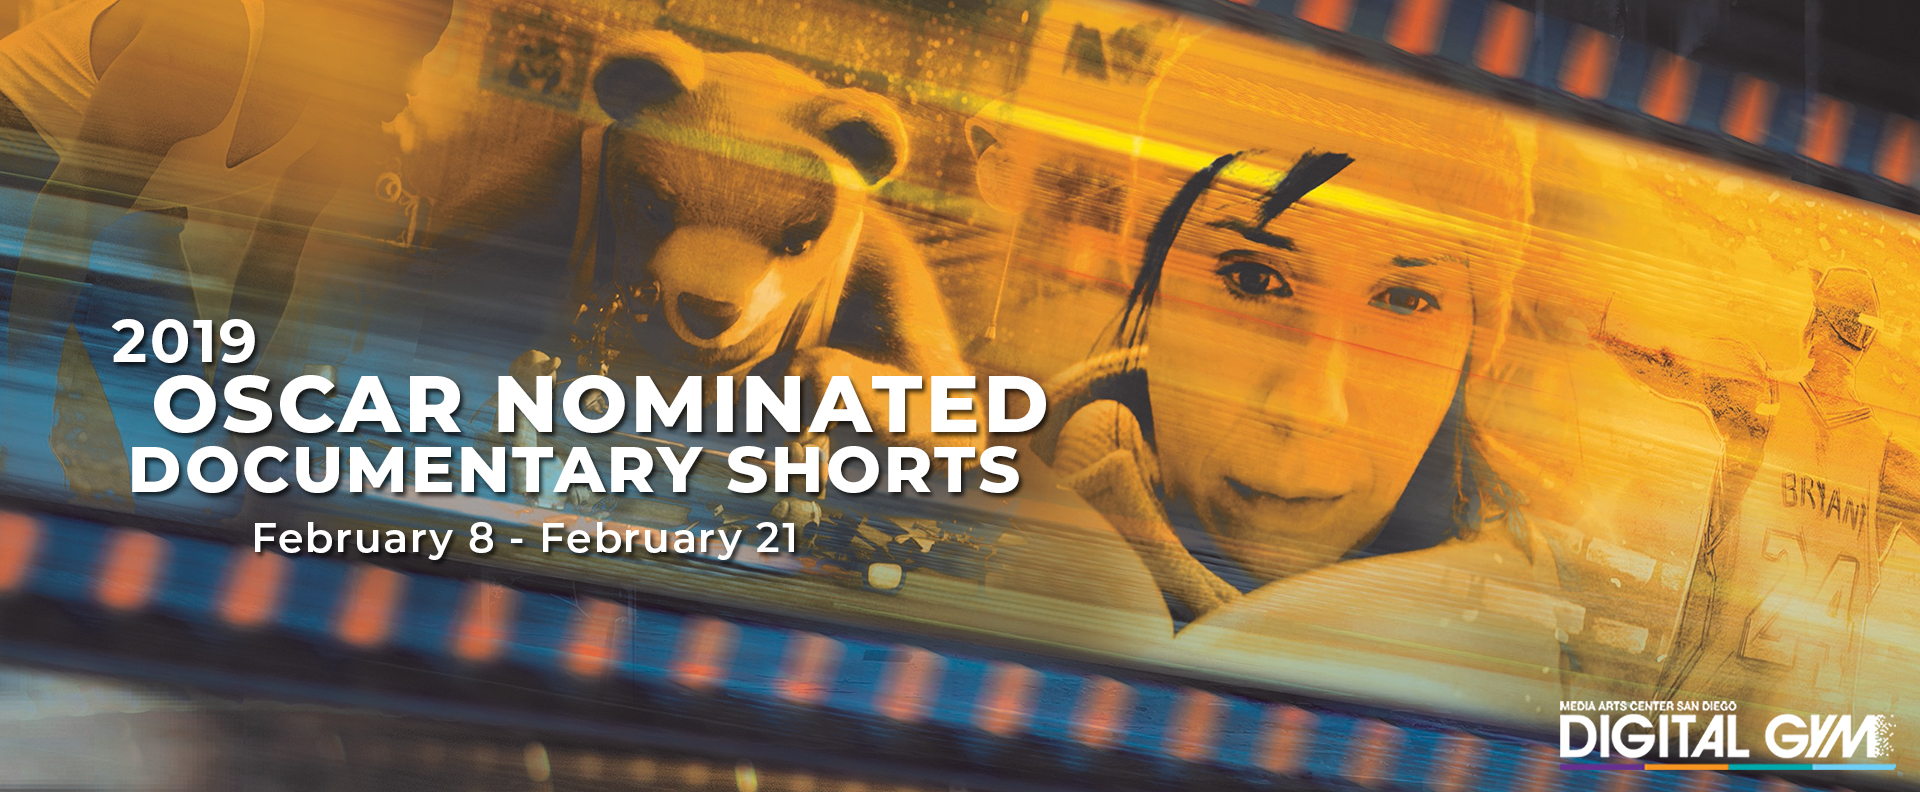 2019 oscar nominated documentary shorts digital gym cinema San Diego